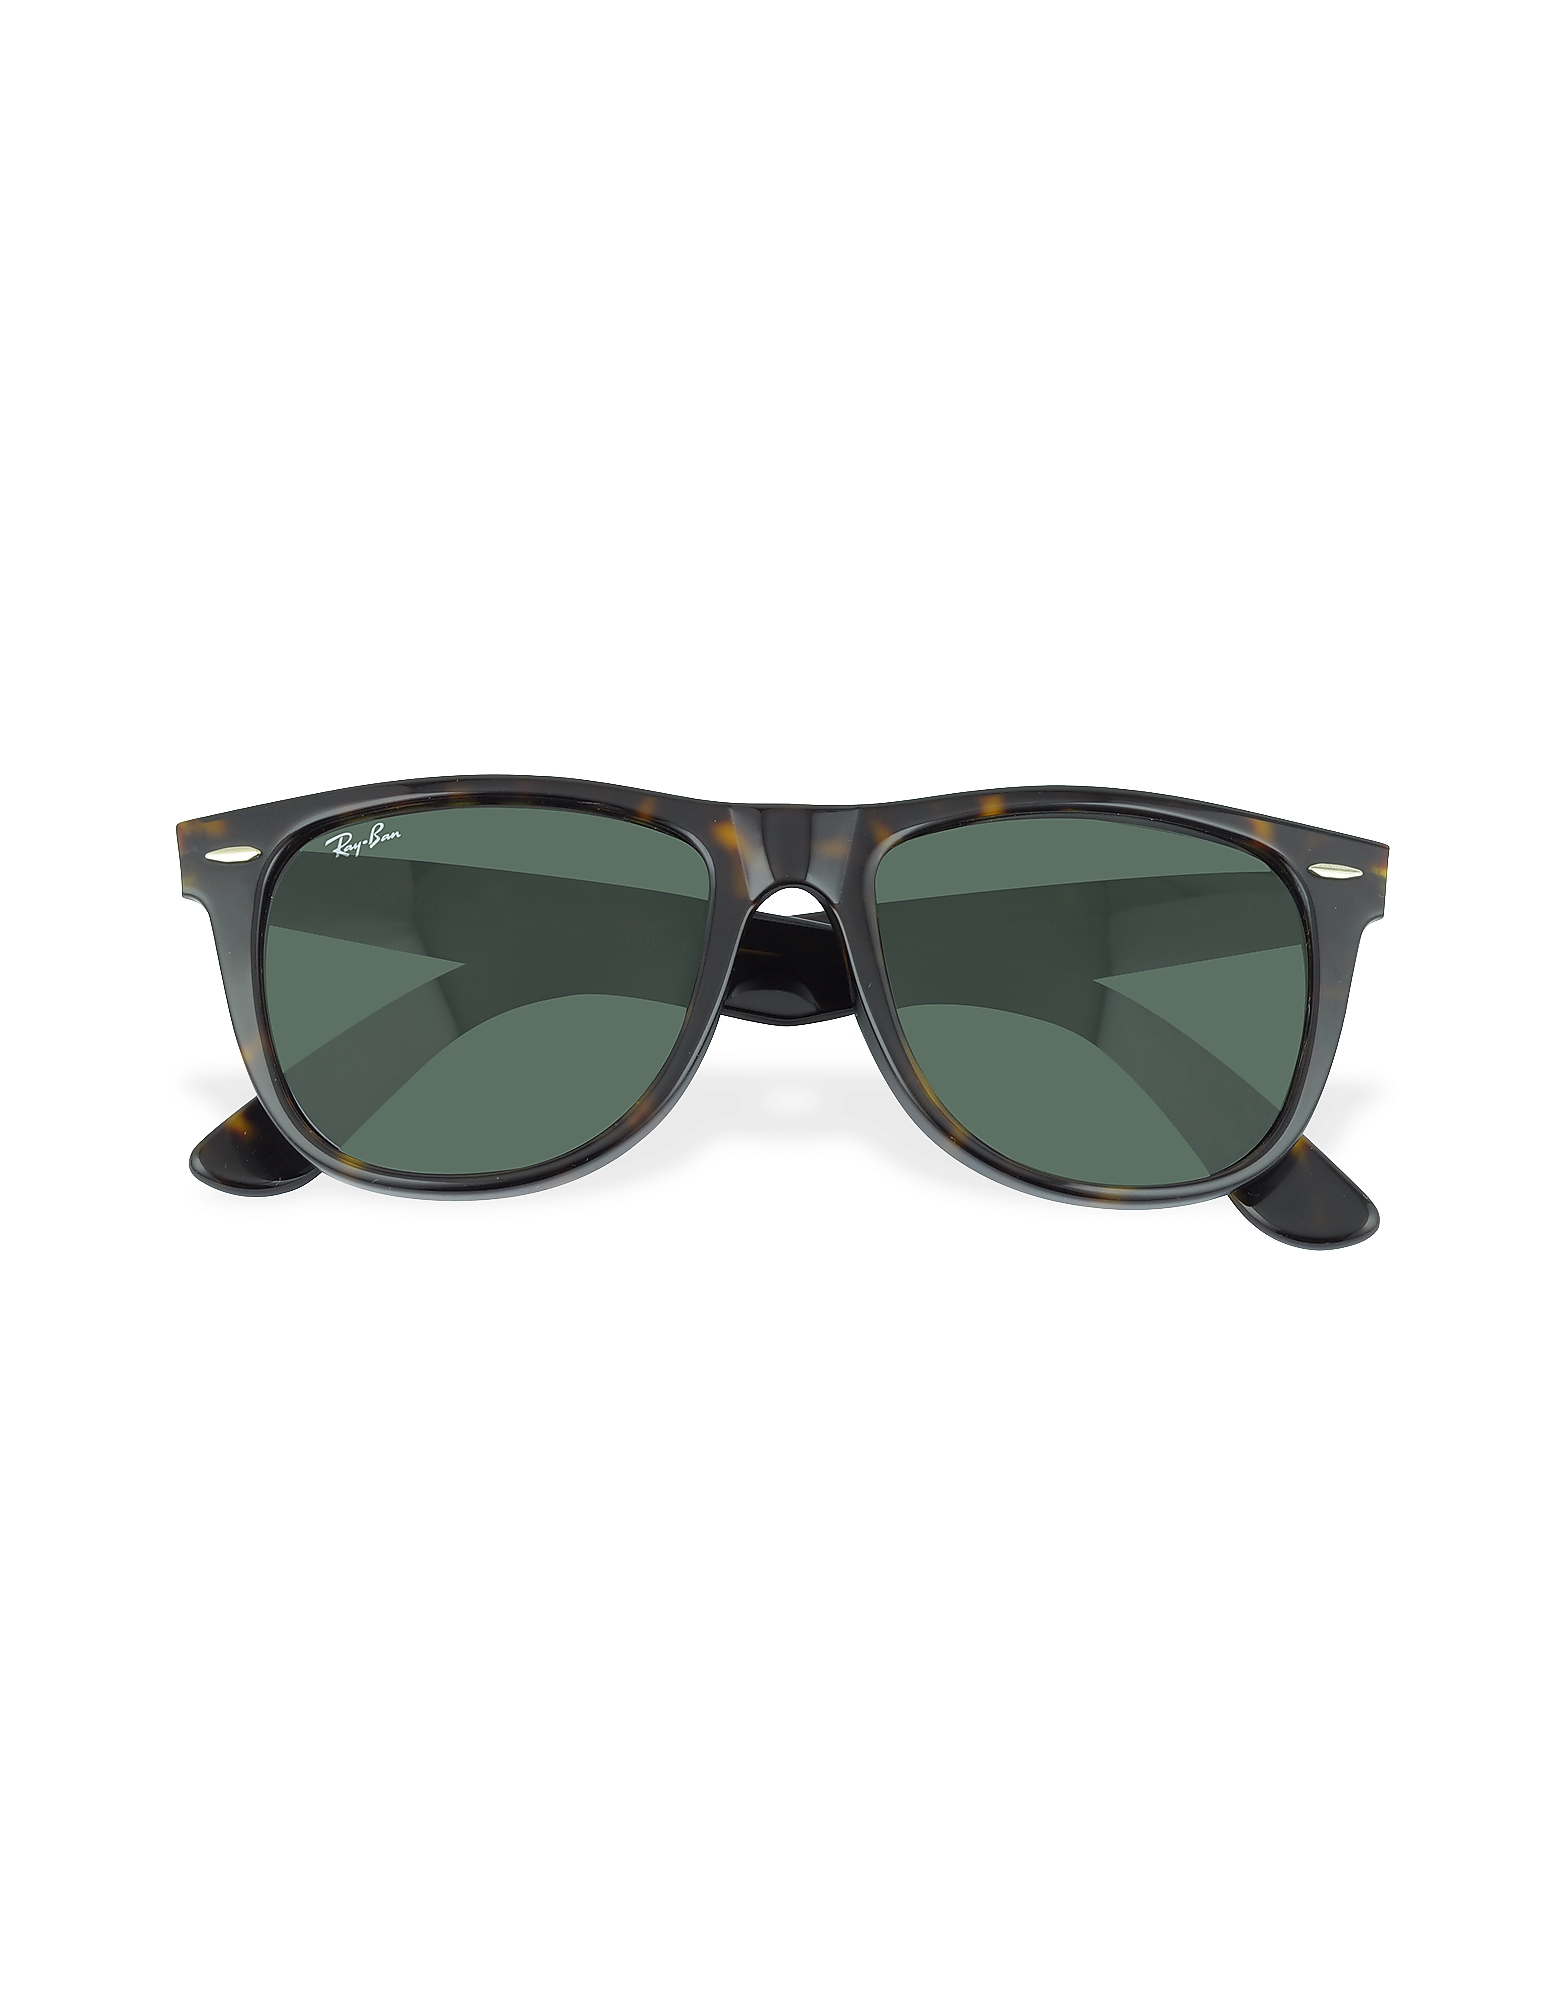 Ray Ban Sunglasses, Original Wayfarer - Square Acetate Sunglasses